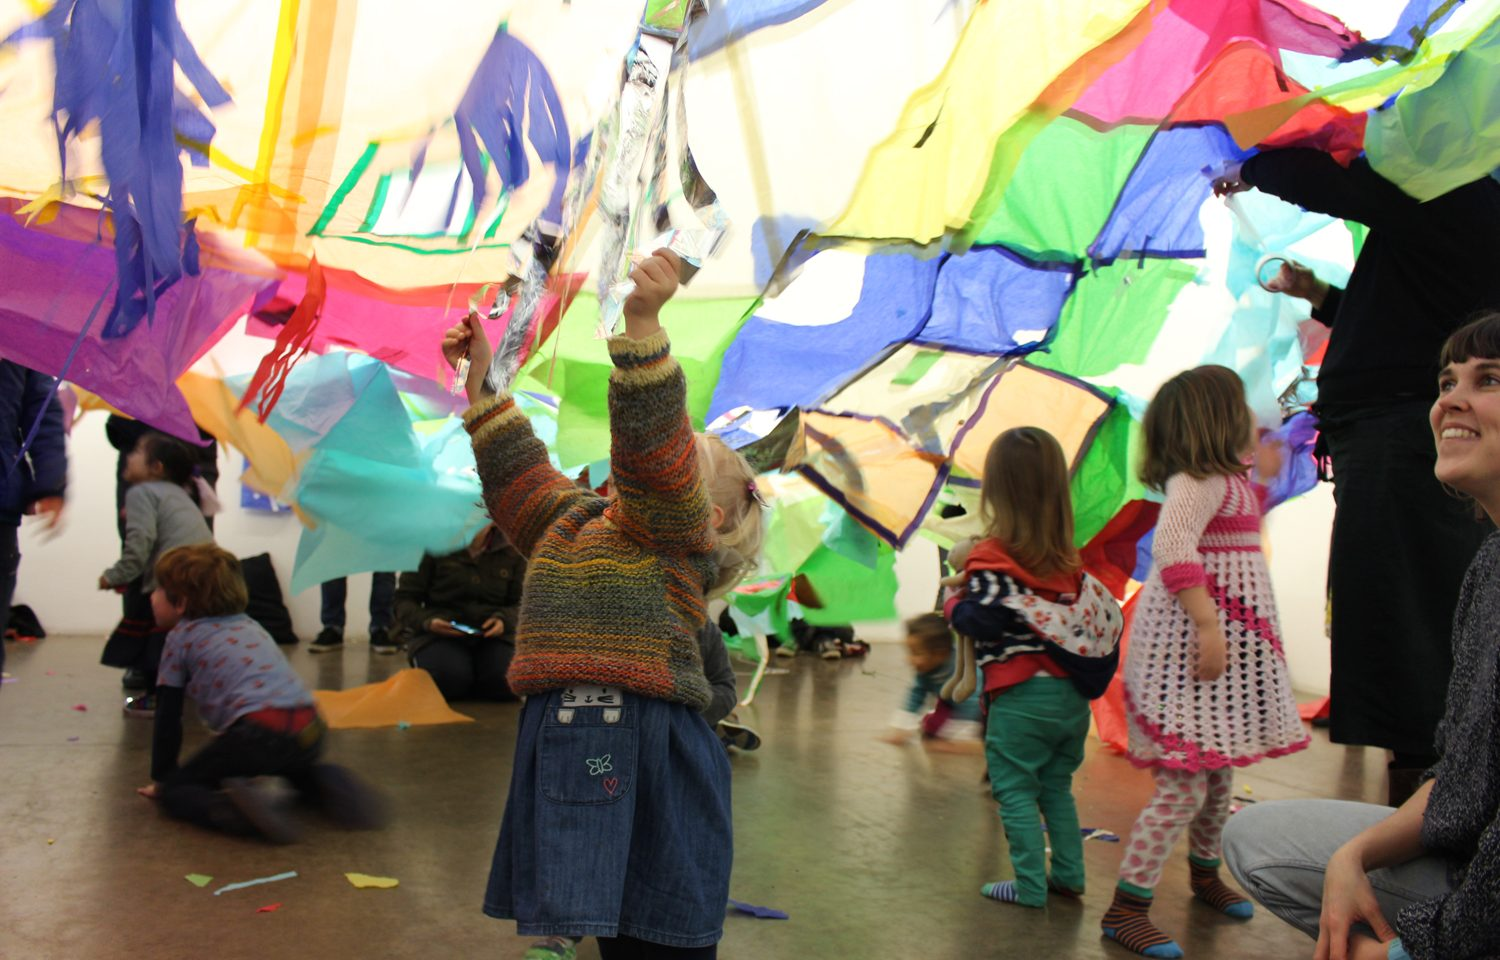 A small child raises her hands to the air to touch lots of pieces of coloured tissue paper above her. Behind other children are playing. To the right of the picture going out of the shot a woman is crouching down and smiling.